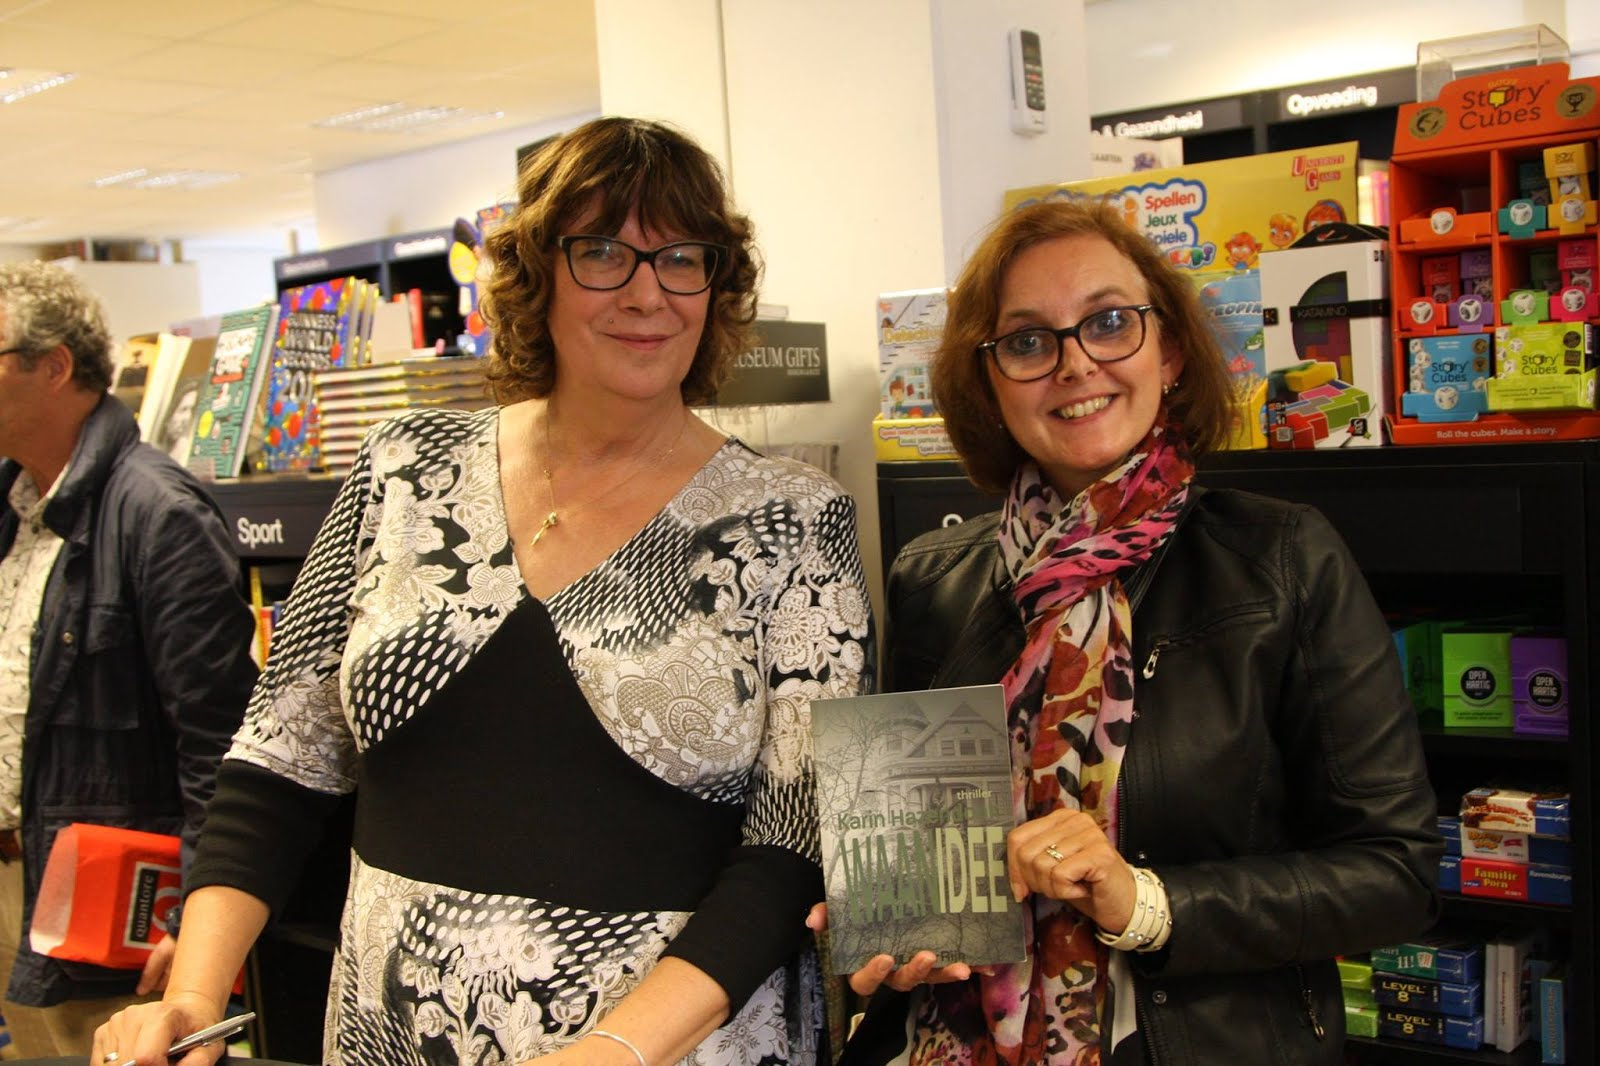 Meet & Greet Karin Hazendonk